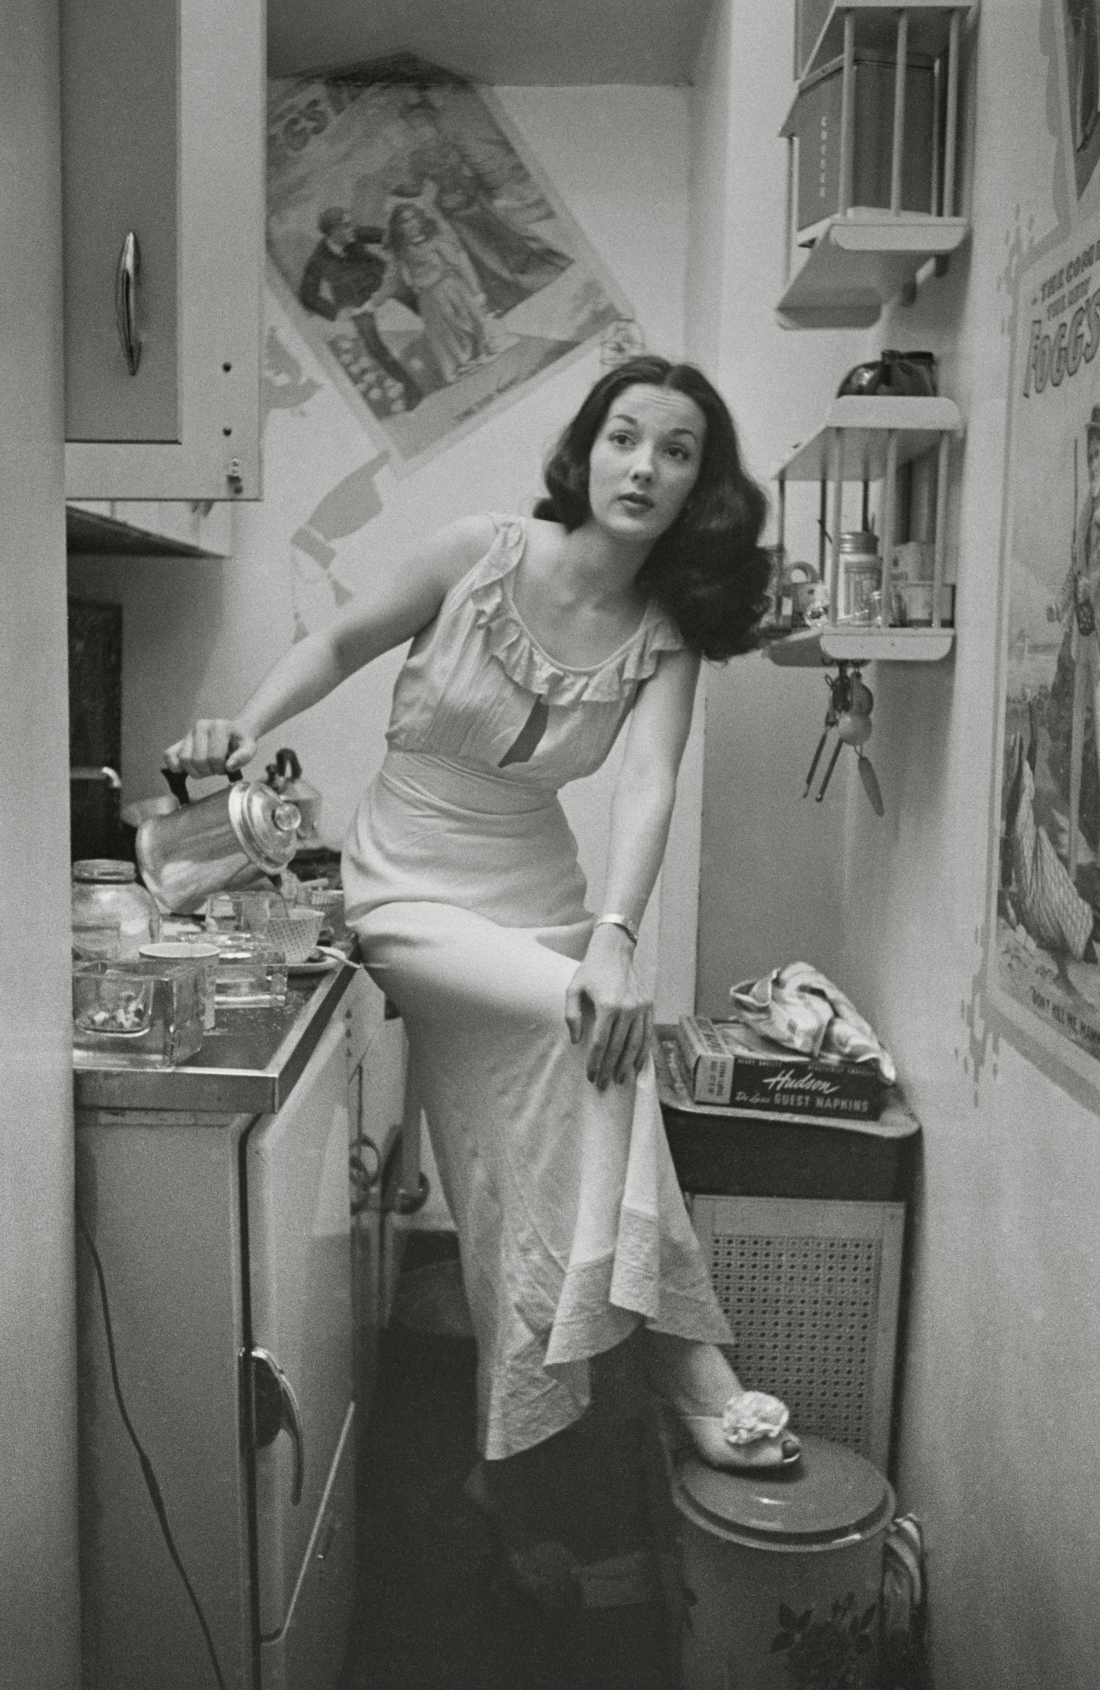 """Stanley Kubrick, from """"Rosemary Williams - Showgirl,"""" 1948. Copyright: © SK Film Archives/Museum of the City of New York"""